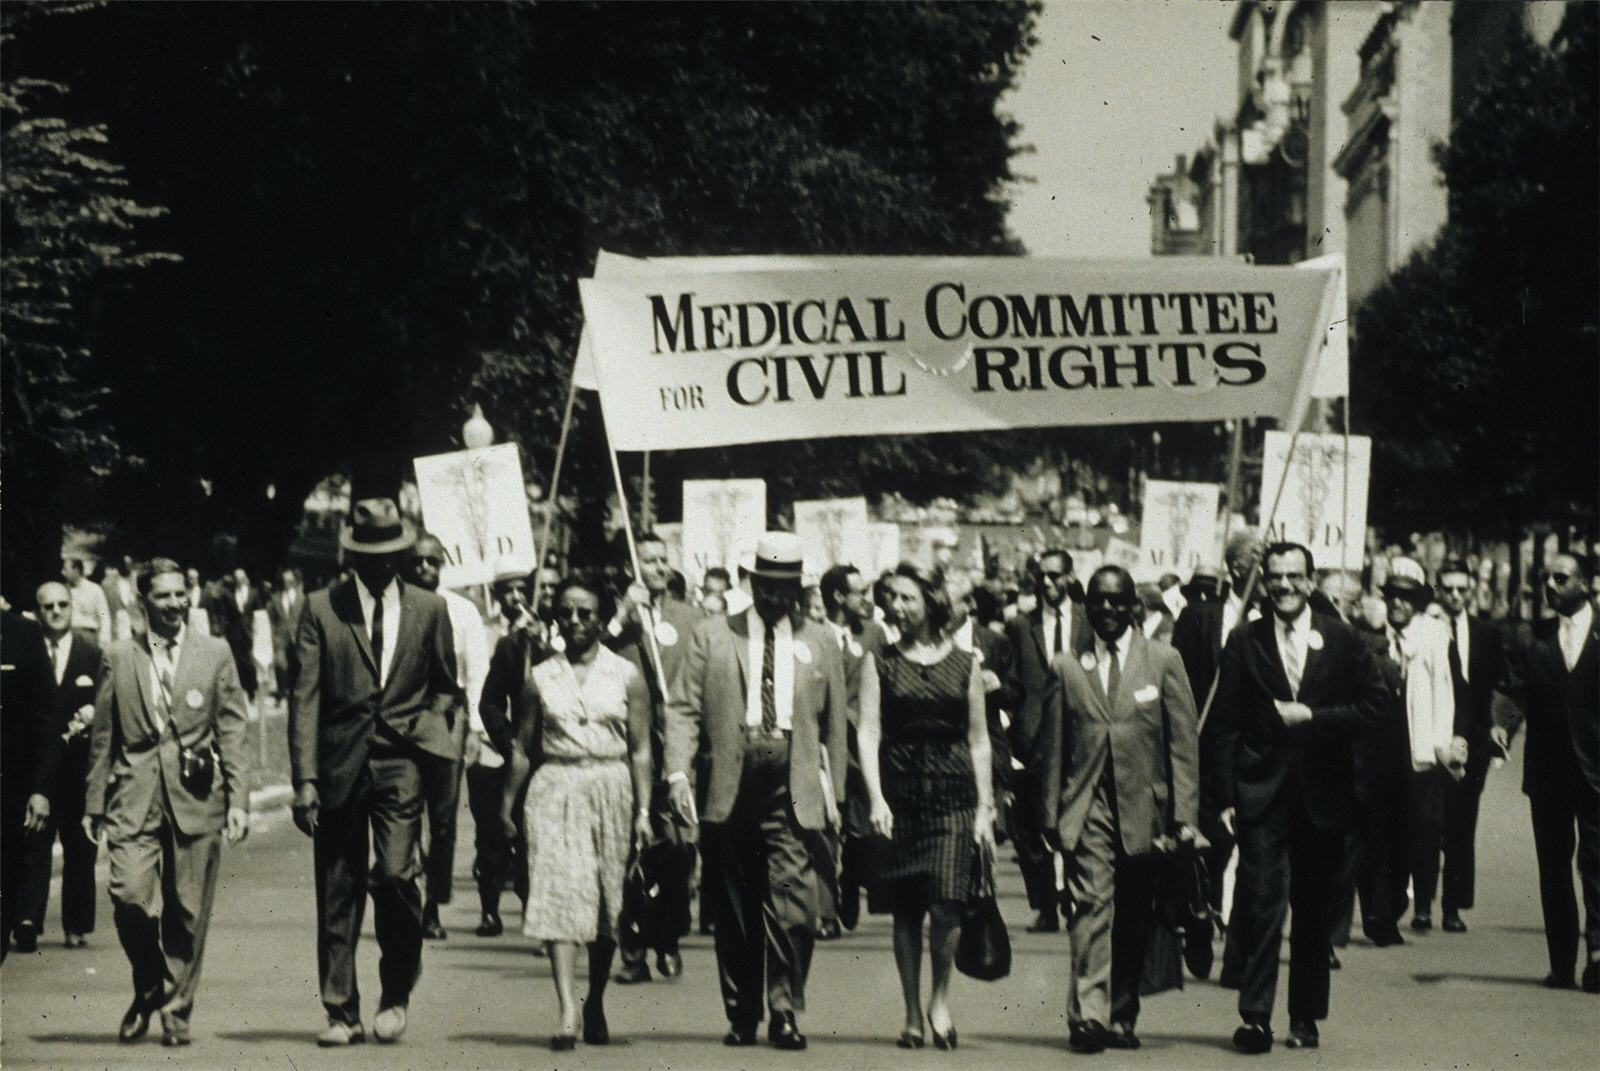 MCCR at the March on Washington